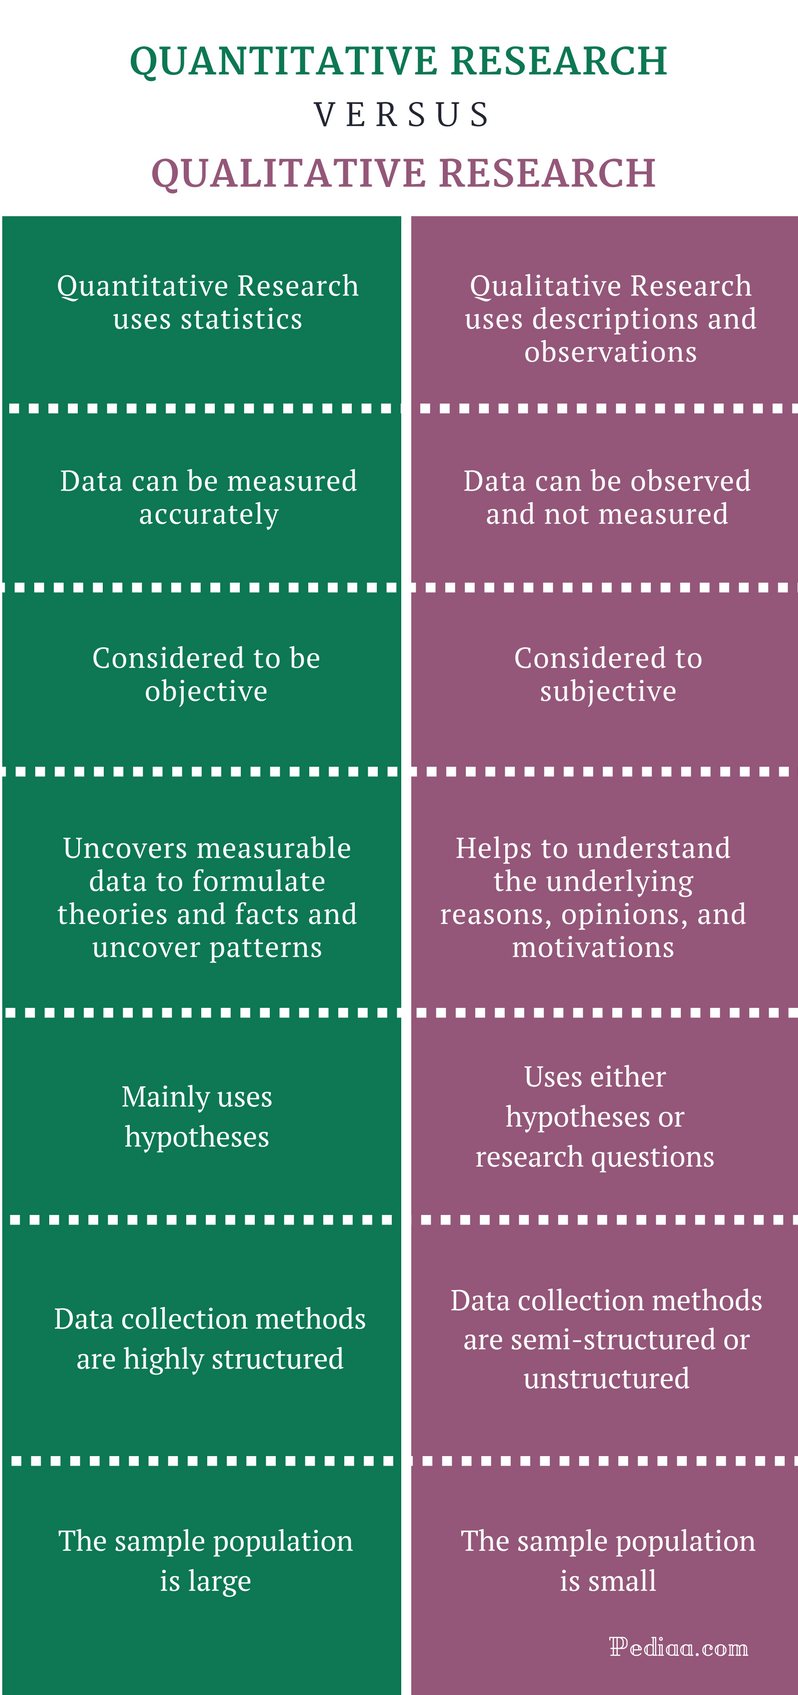 Difference Between Quantitative and Qualitative Research - Comparison Summary